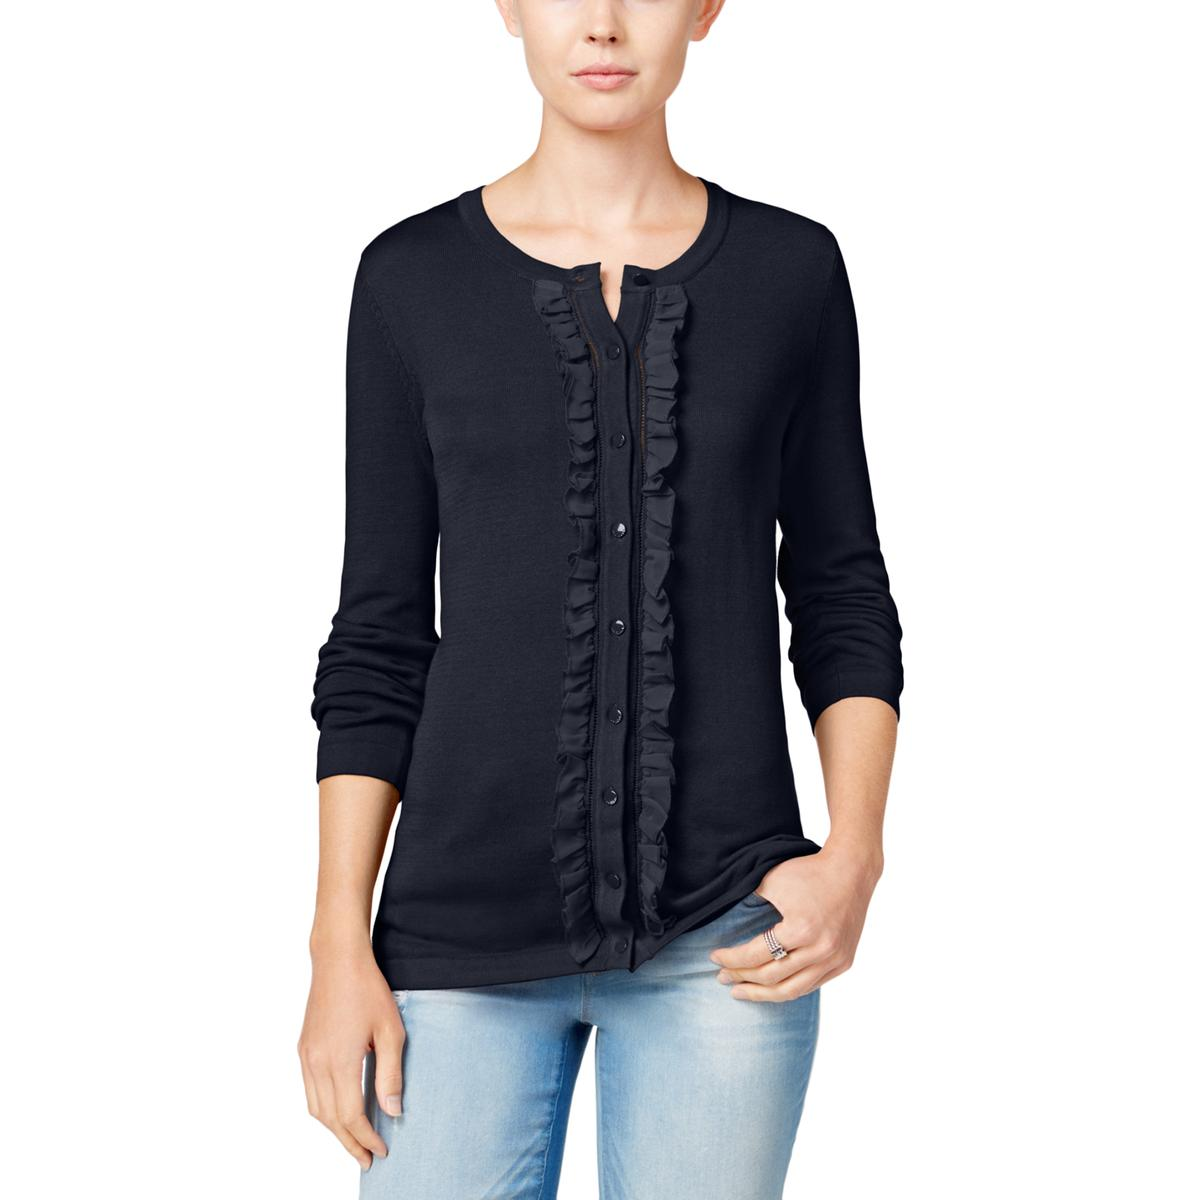 Tommy-Hilfiger-3659-Womens-Ruffled-Long-Sleeves-Cardigan-Top-Sweater-BHFO